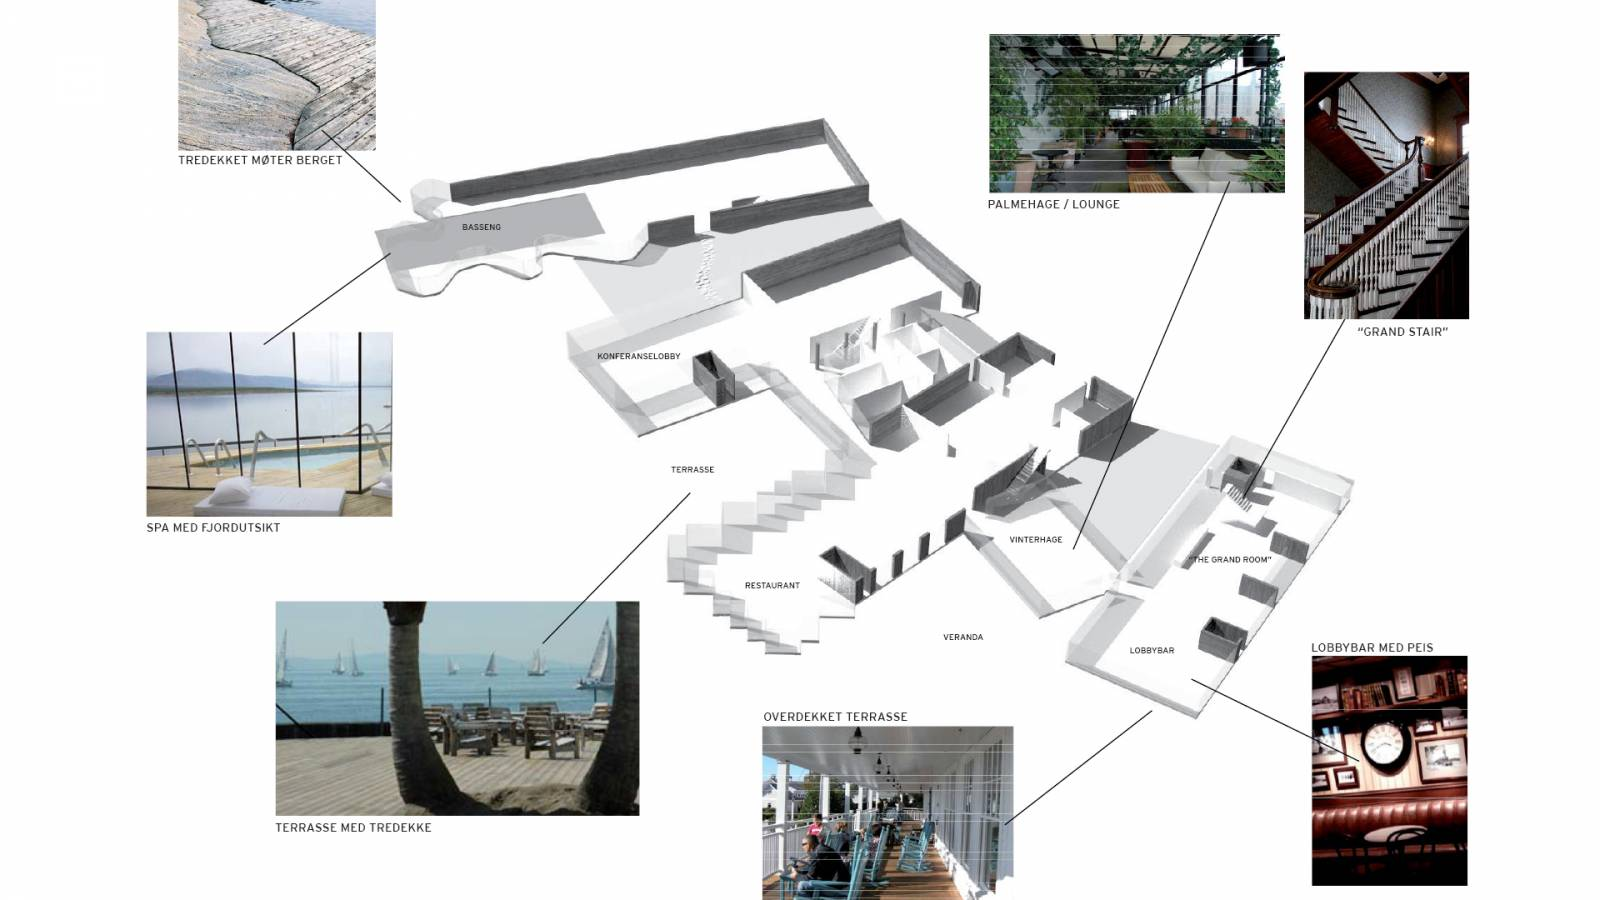 GROUND FLOOR PROGRAMME - Støtvig Hotel & Resort - SPOL Architects